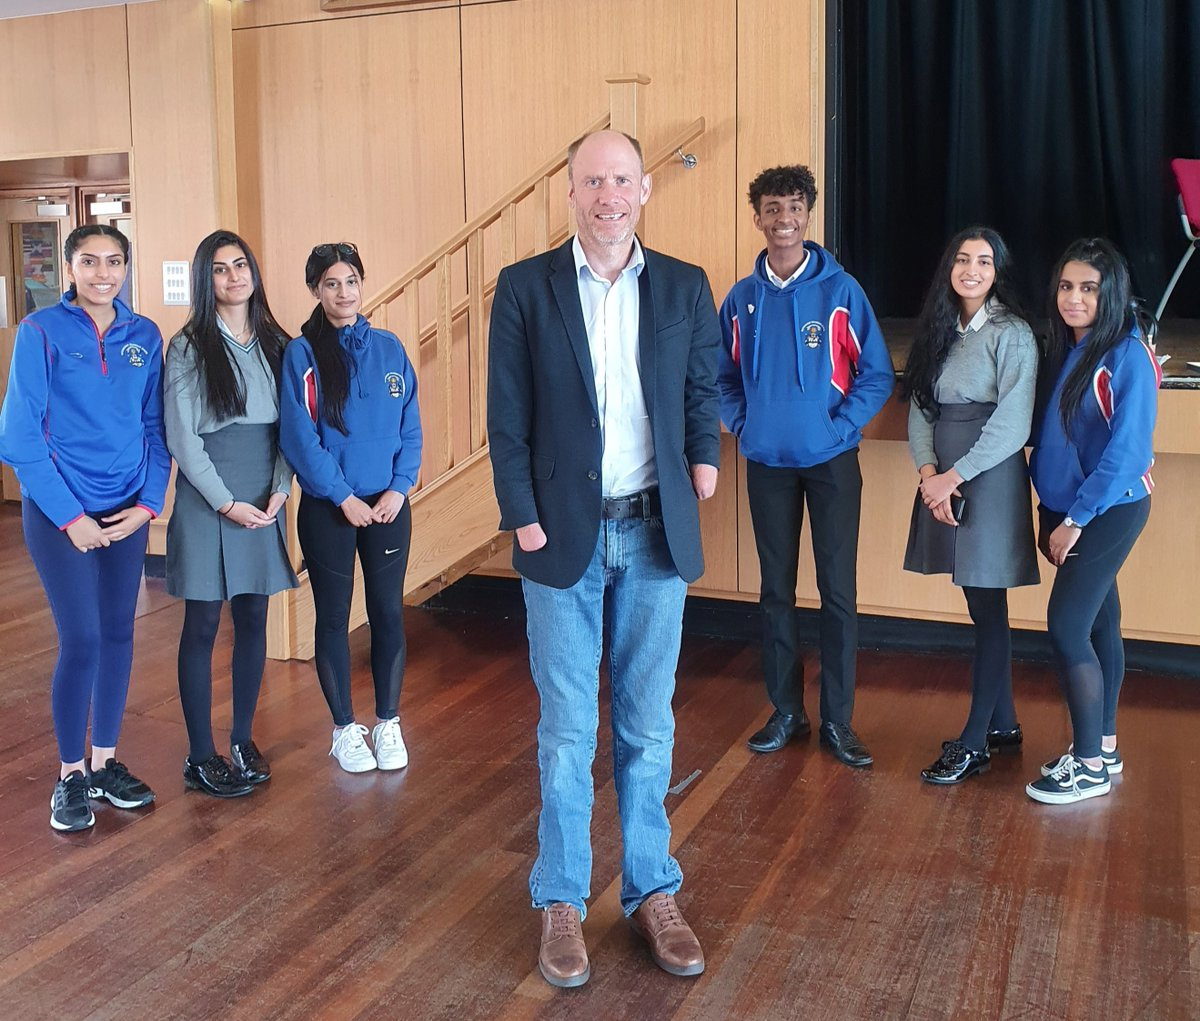 The S6 pupils thoroughly enjoyed their first Talking Points speech of the year from the inspirational Jamie Andrew OBE who, despite being a quadruple amputee, has climbed mountains all over the world and has raised thousands of pounds for charity along the way. https://t.co/awiAsaZtM5